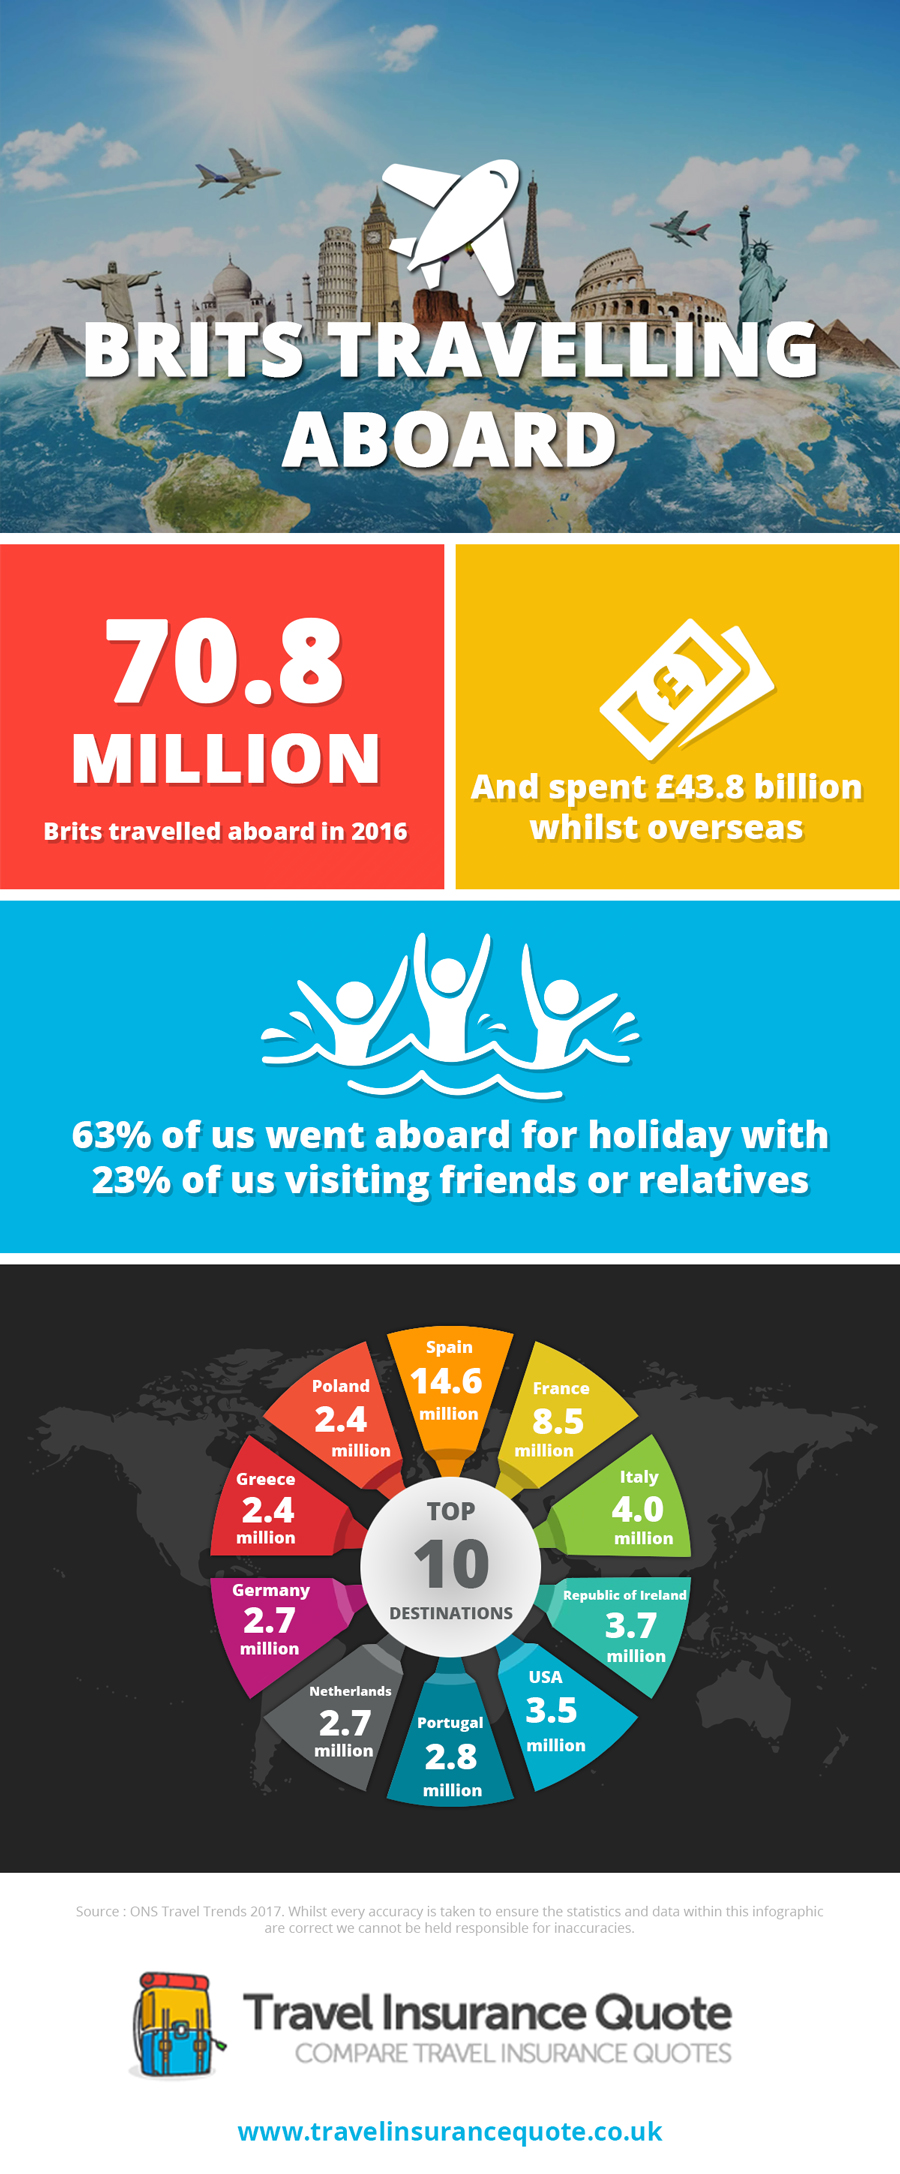 Brits Travelling Aboard Infographic